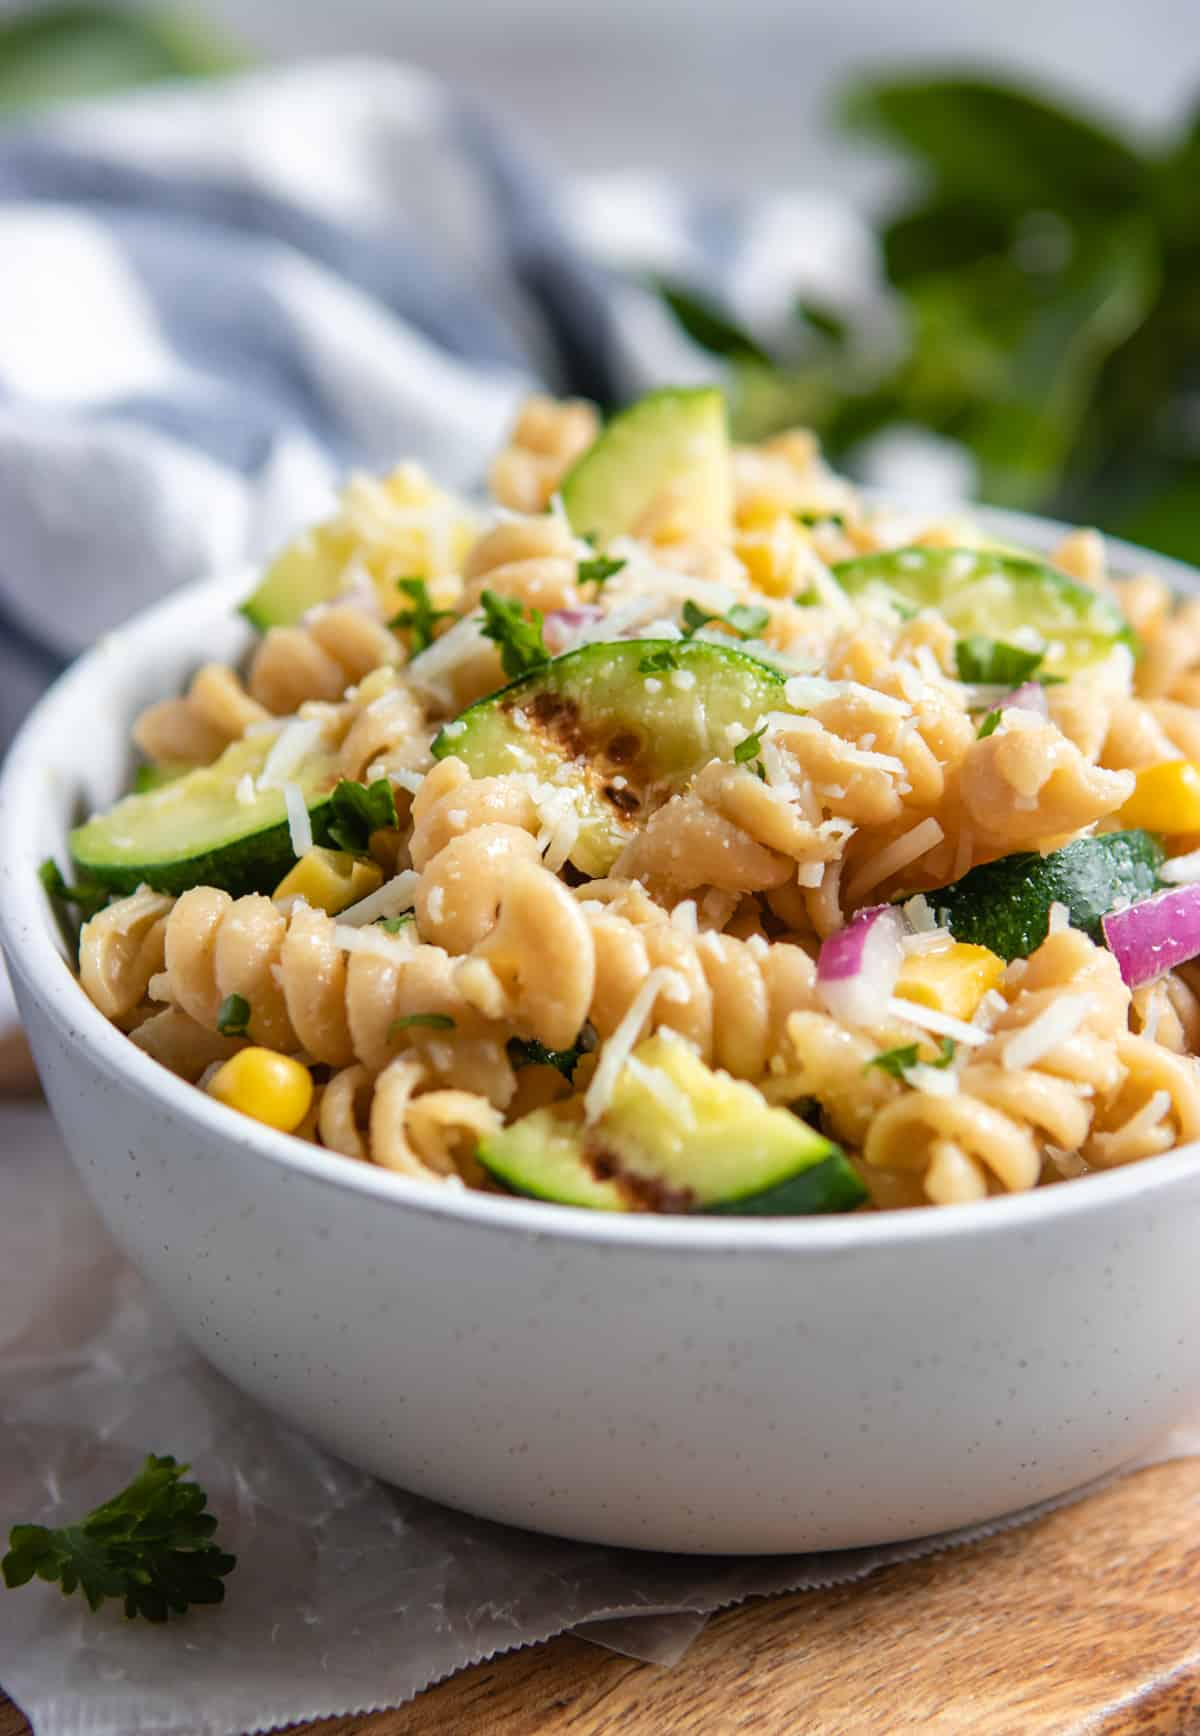 Bowl with pasta salad with grilled zucchini, red onion, corn and cheese.